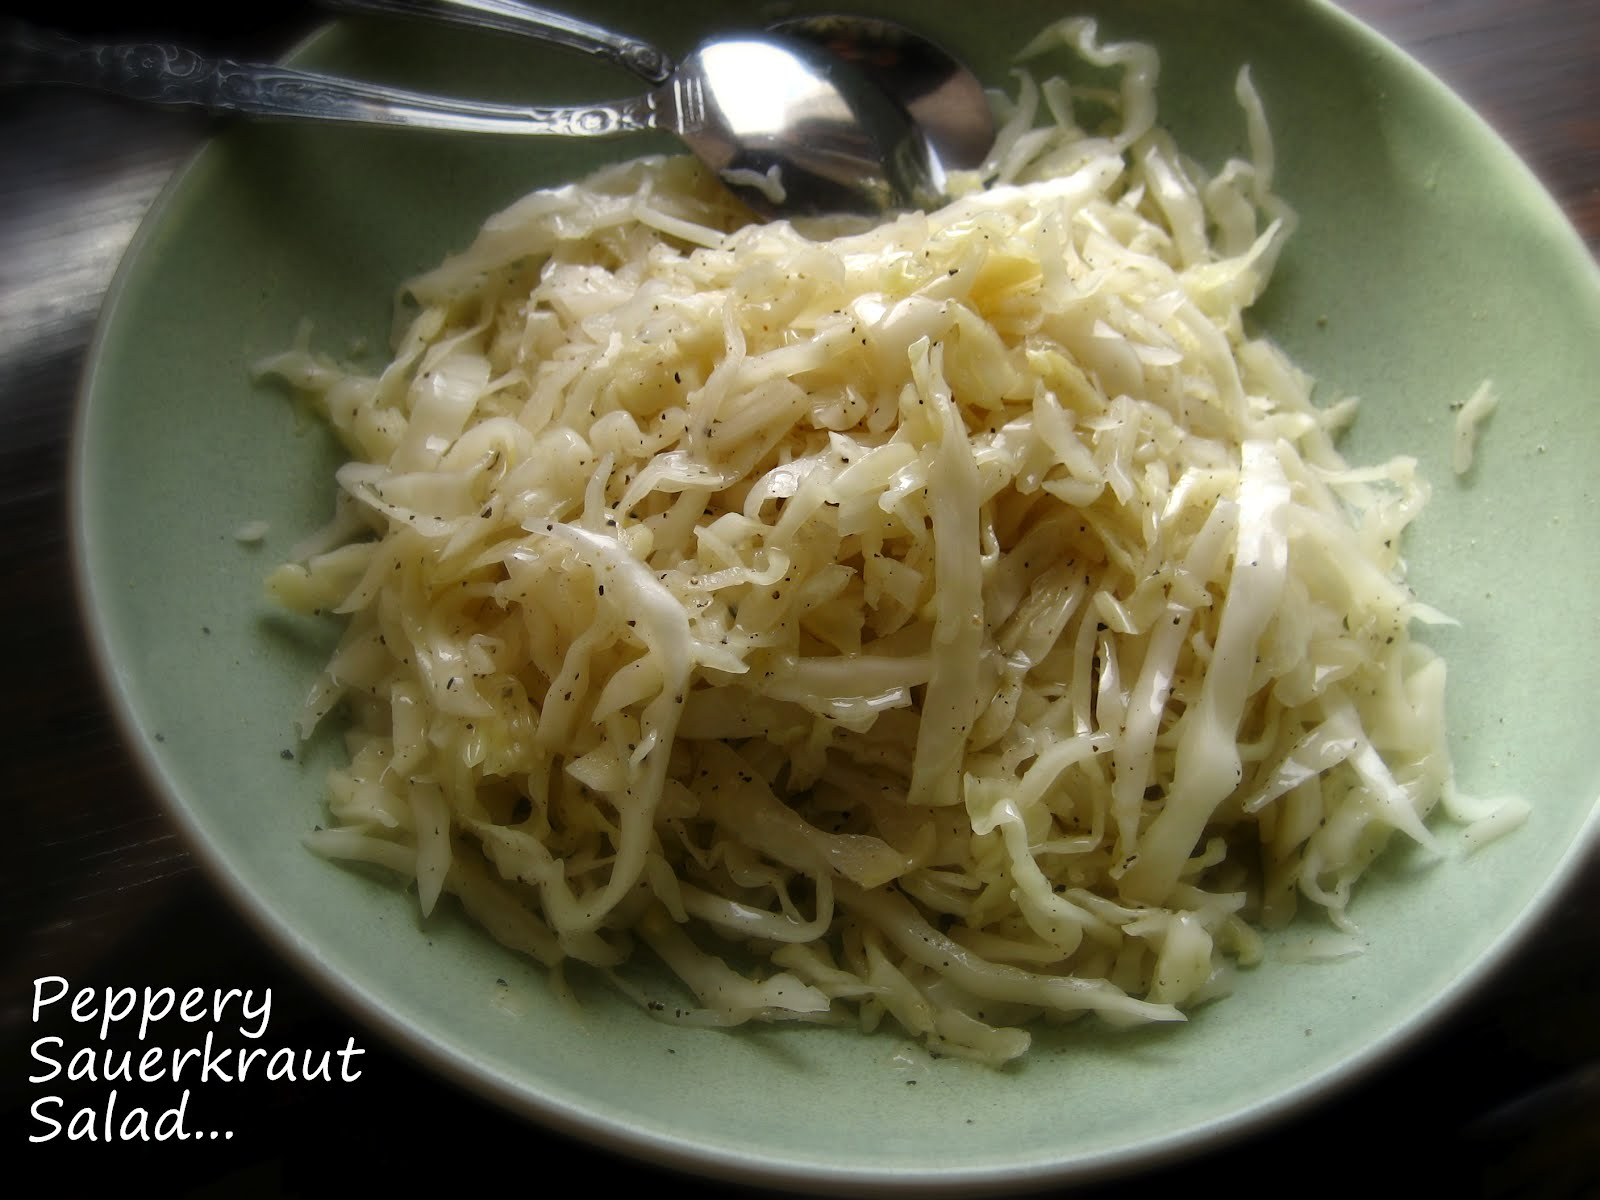 ... Whole/Half Head Cabbage) Sauerkraut... and a Peppery Sauerkraut Salad